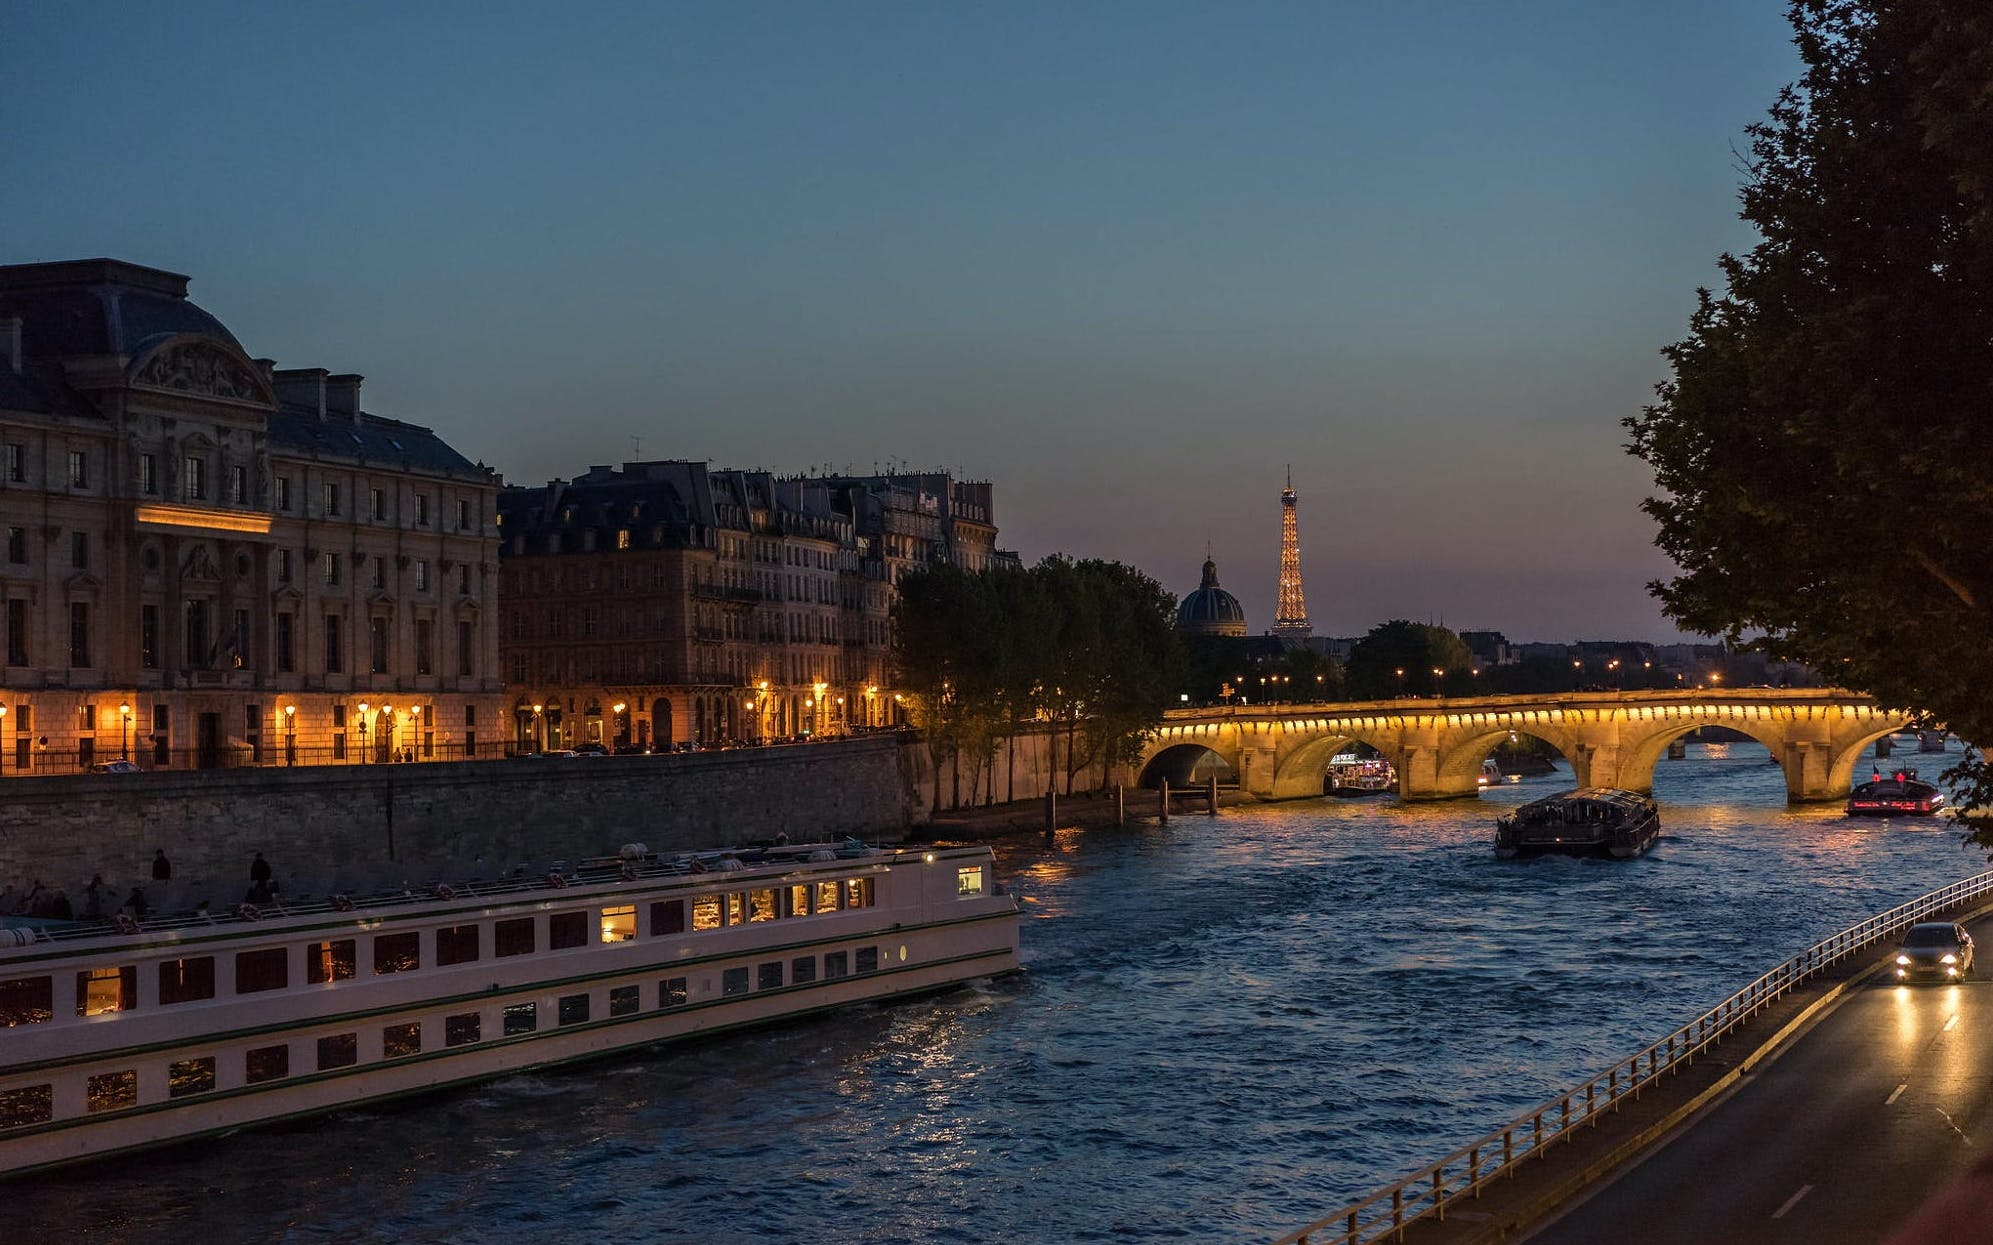 bateaux parisiens late evening seine river dinner cruise with wine-3